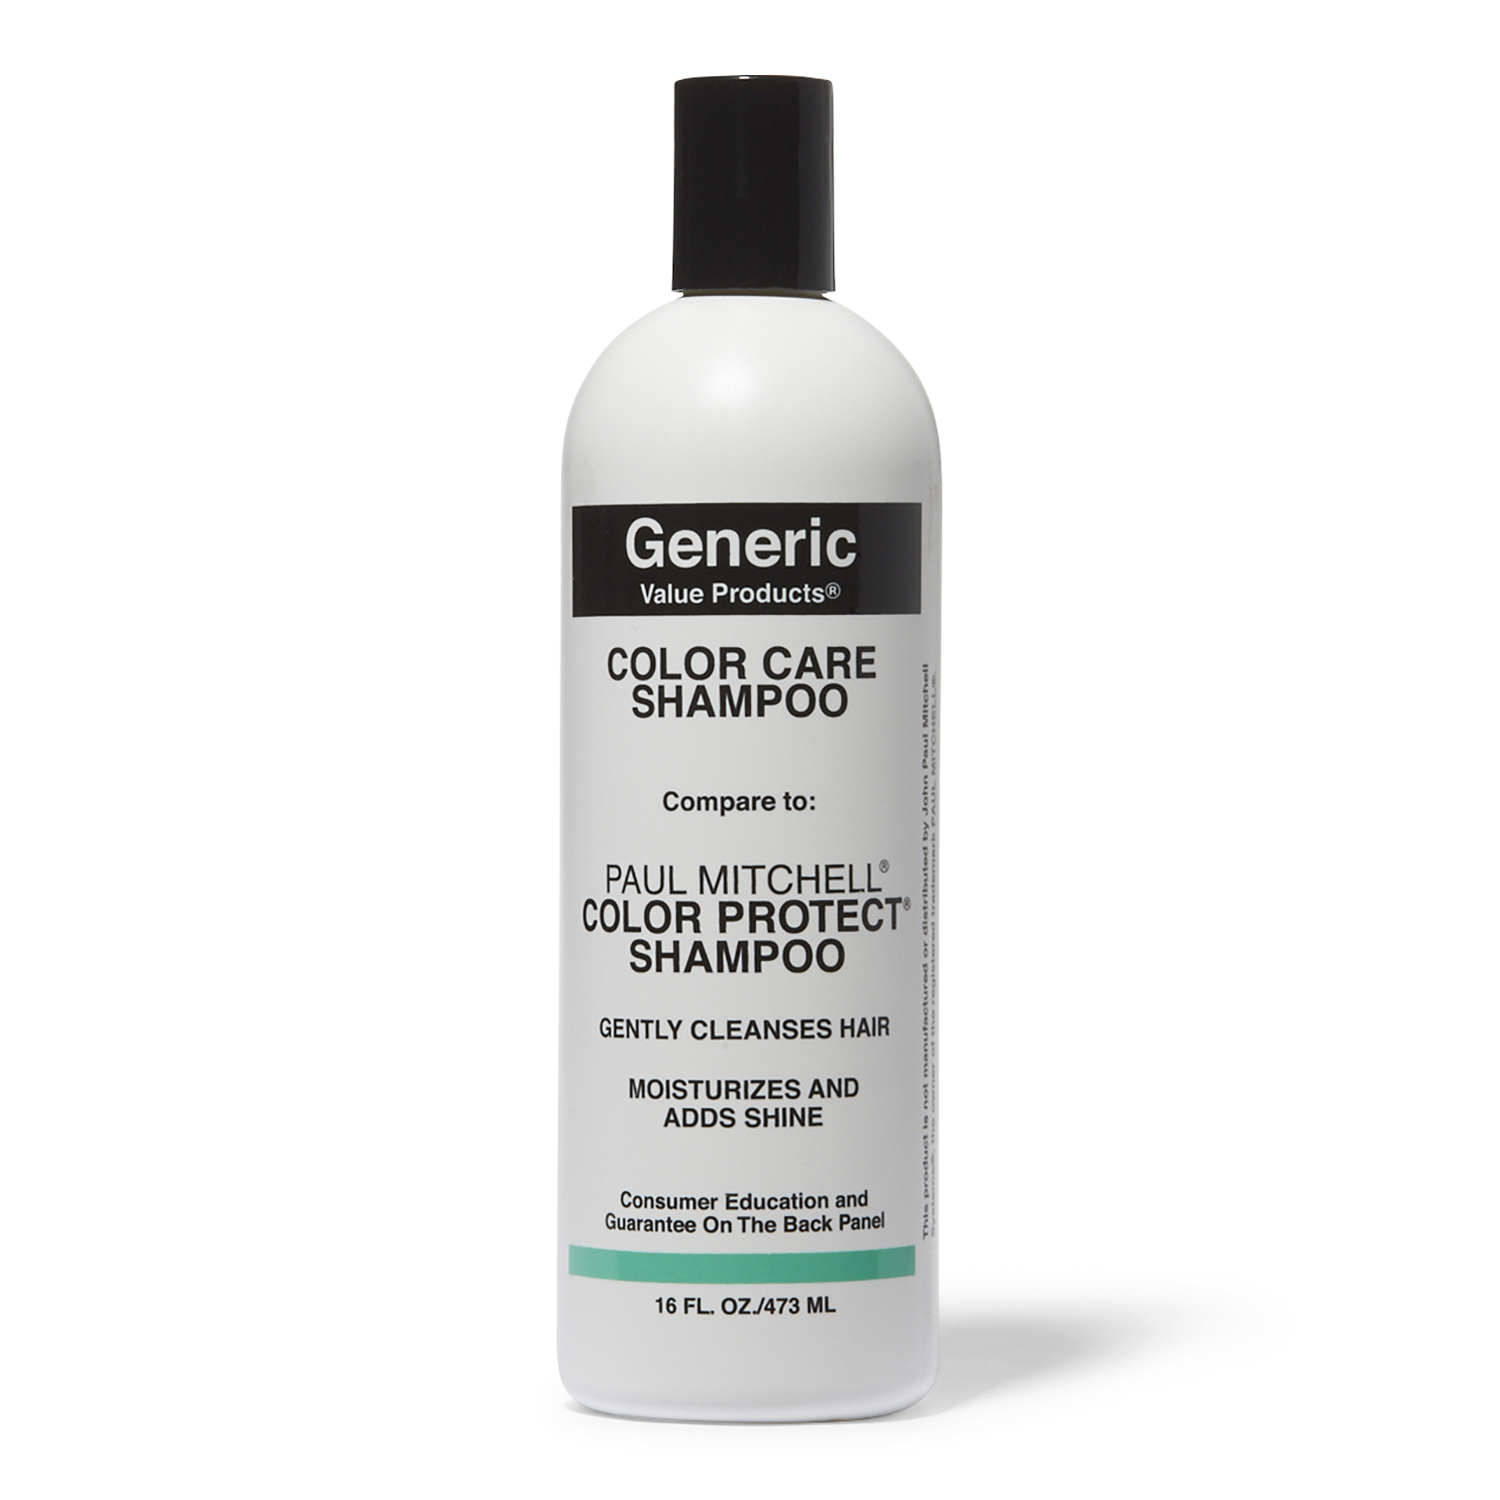 Generic Value Products Color Care Shampoo Compare To Paul Mitchell